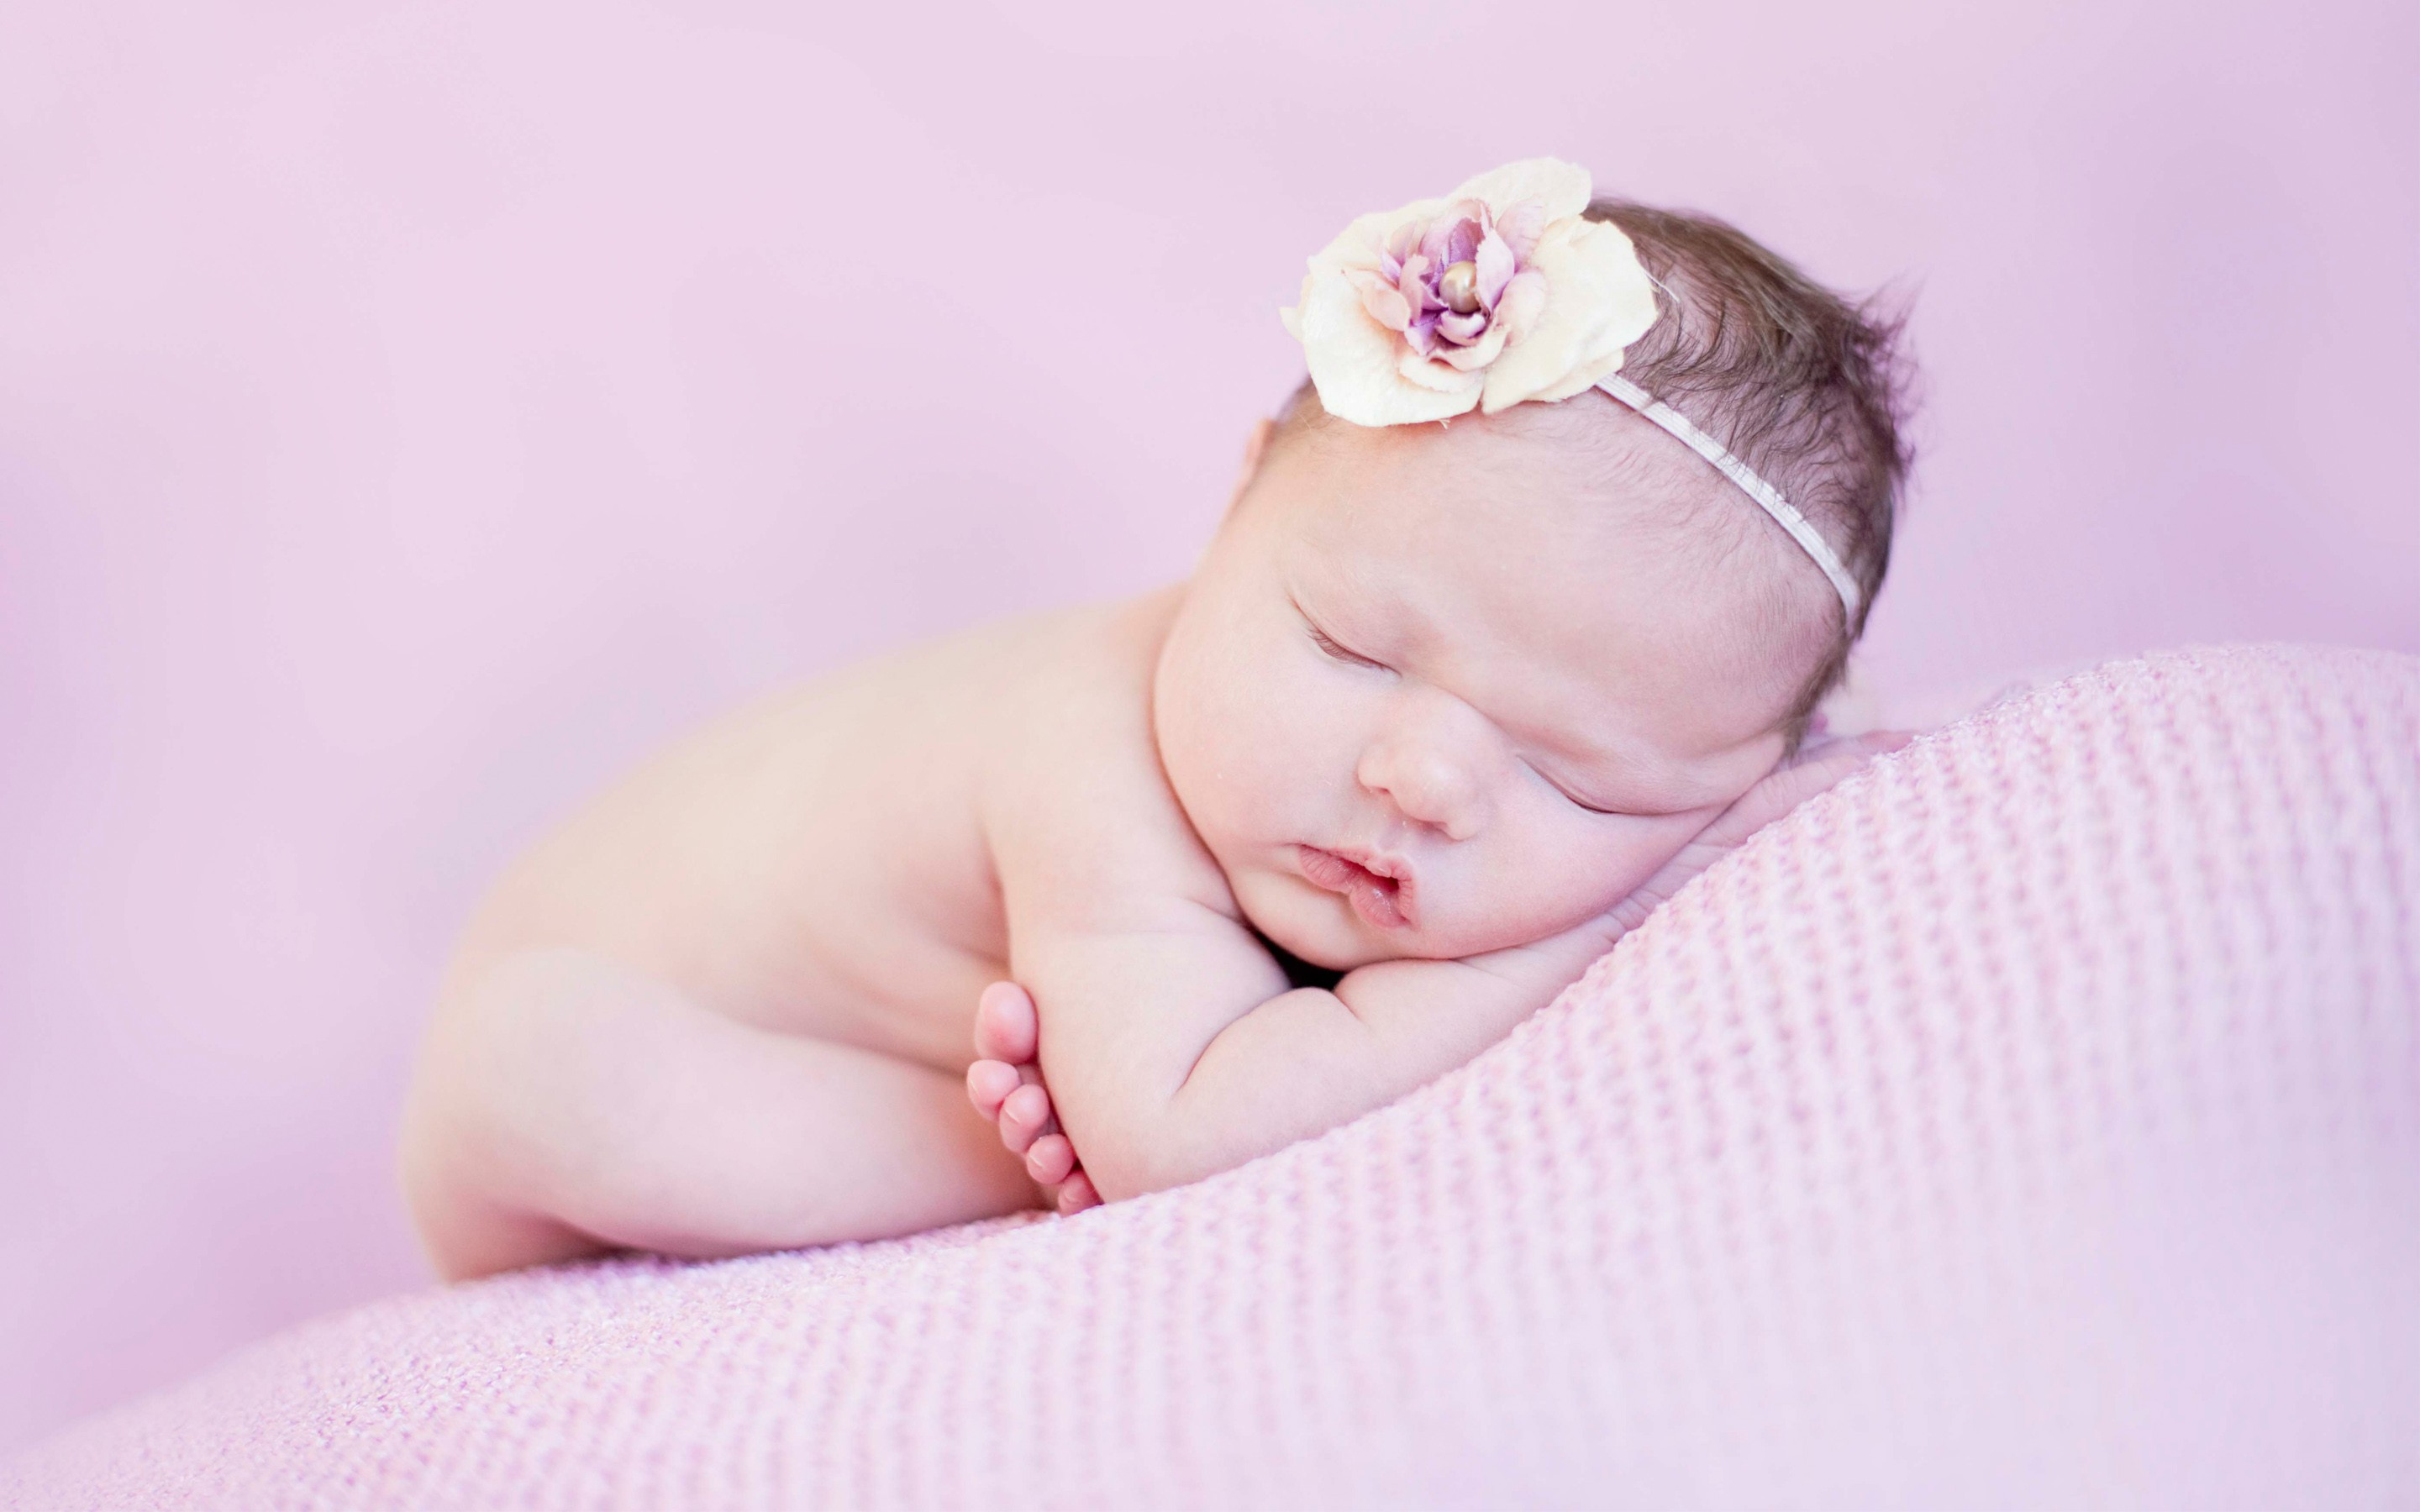 1280x1024 Newborn Baby Cute 1280x1024 Resolution HD 4k Wallpapers, Images,  Backgrounds, Photos and Pictures